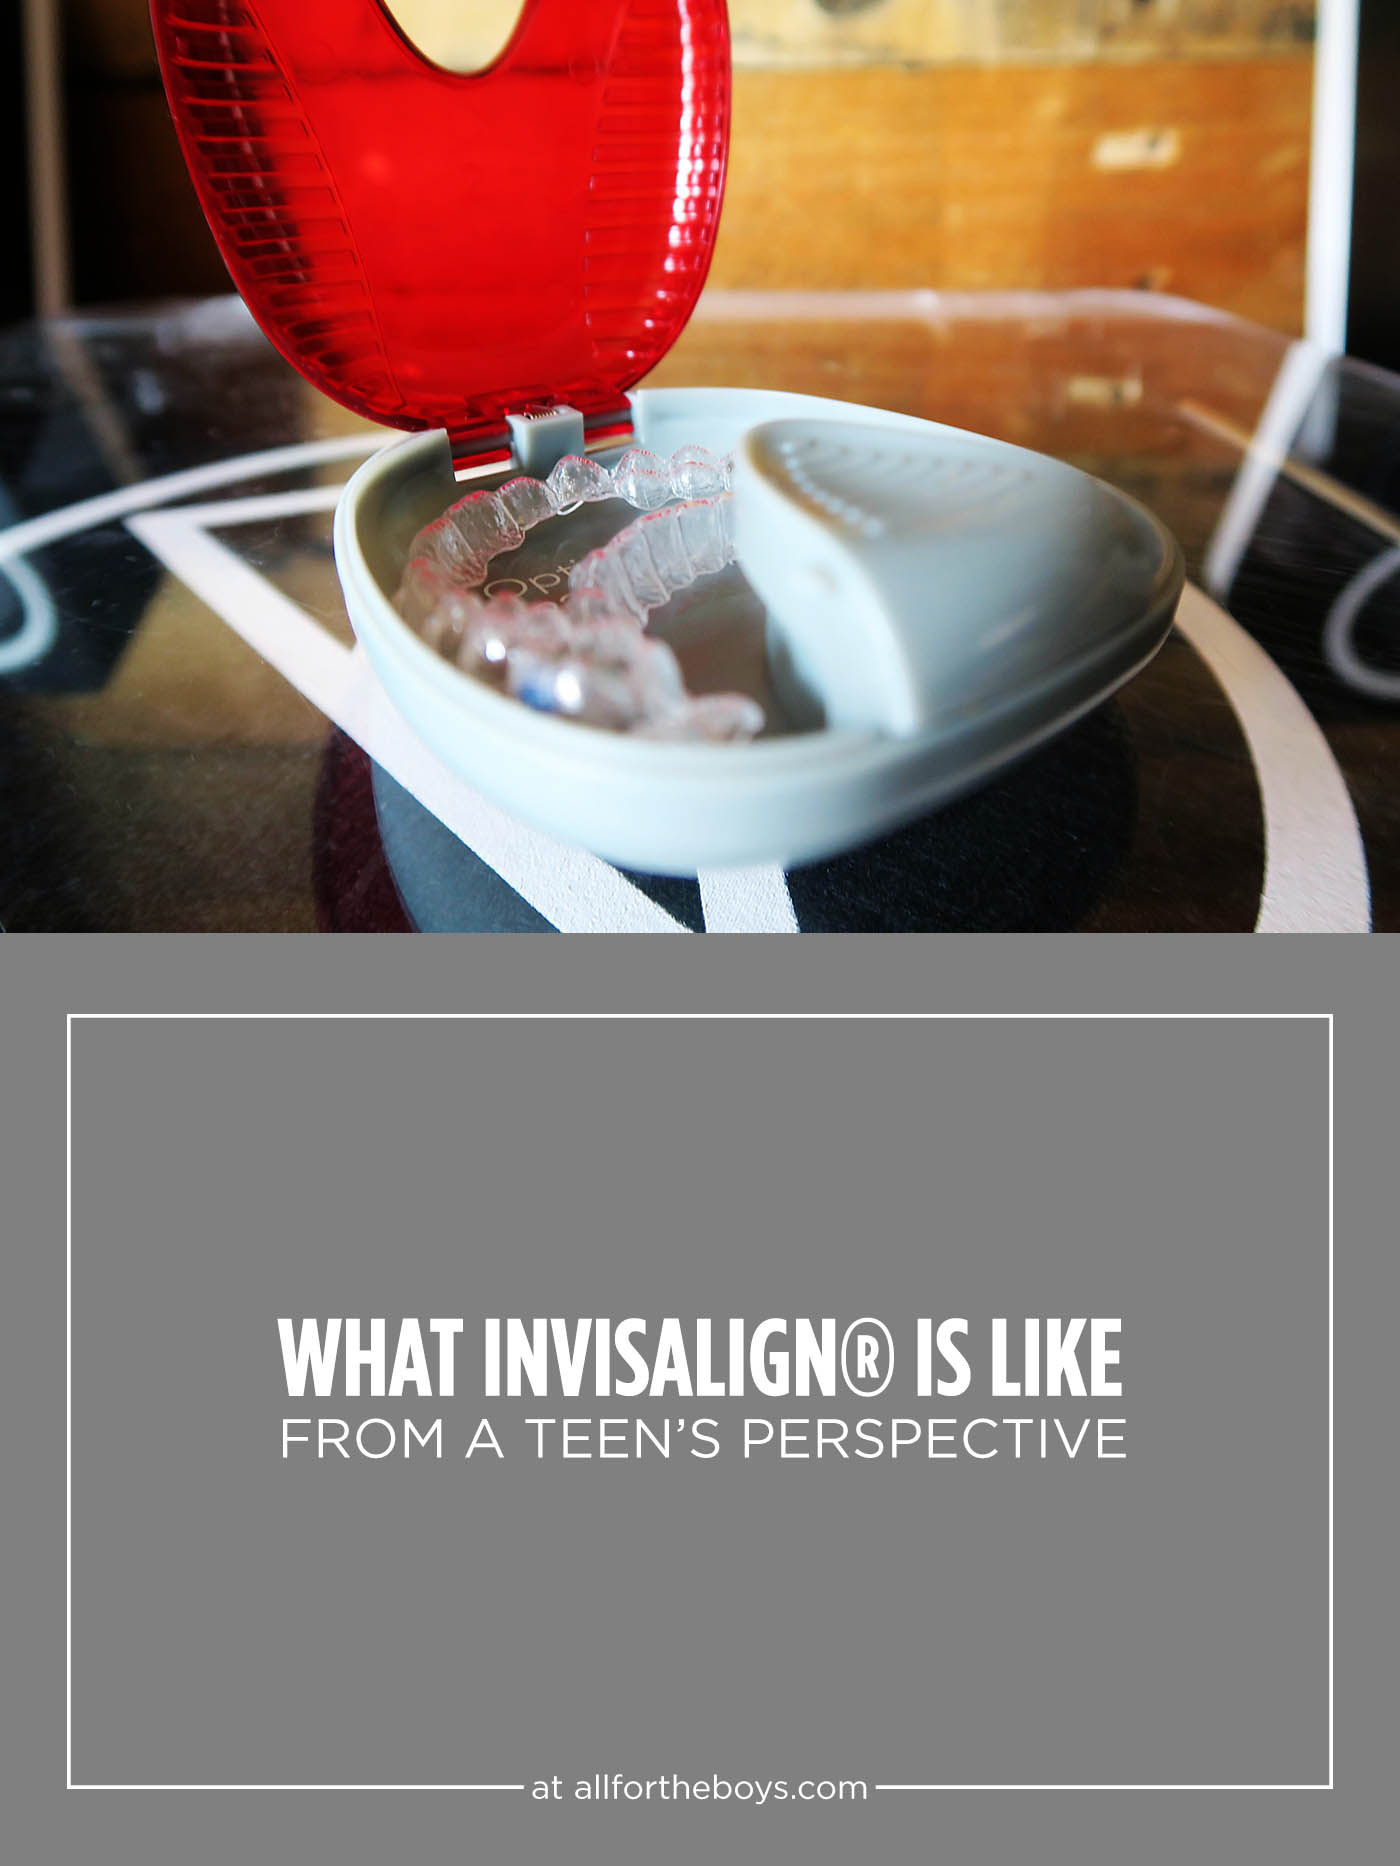 What Invisalign® is like from a teen's perspective